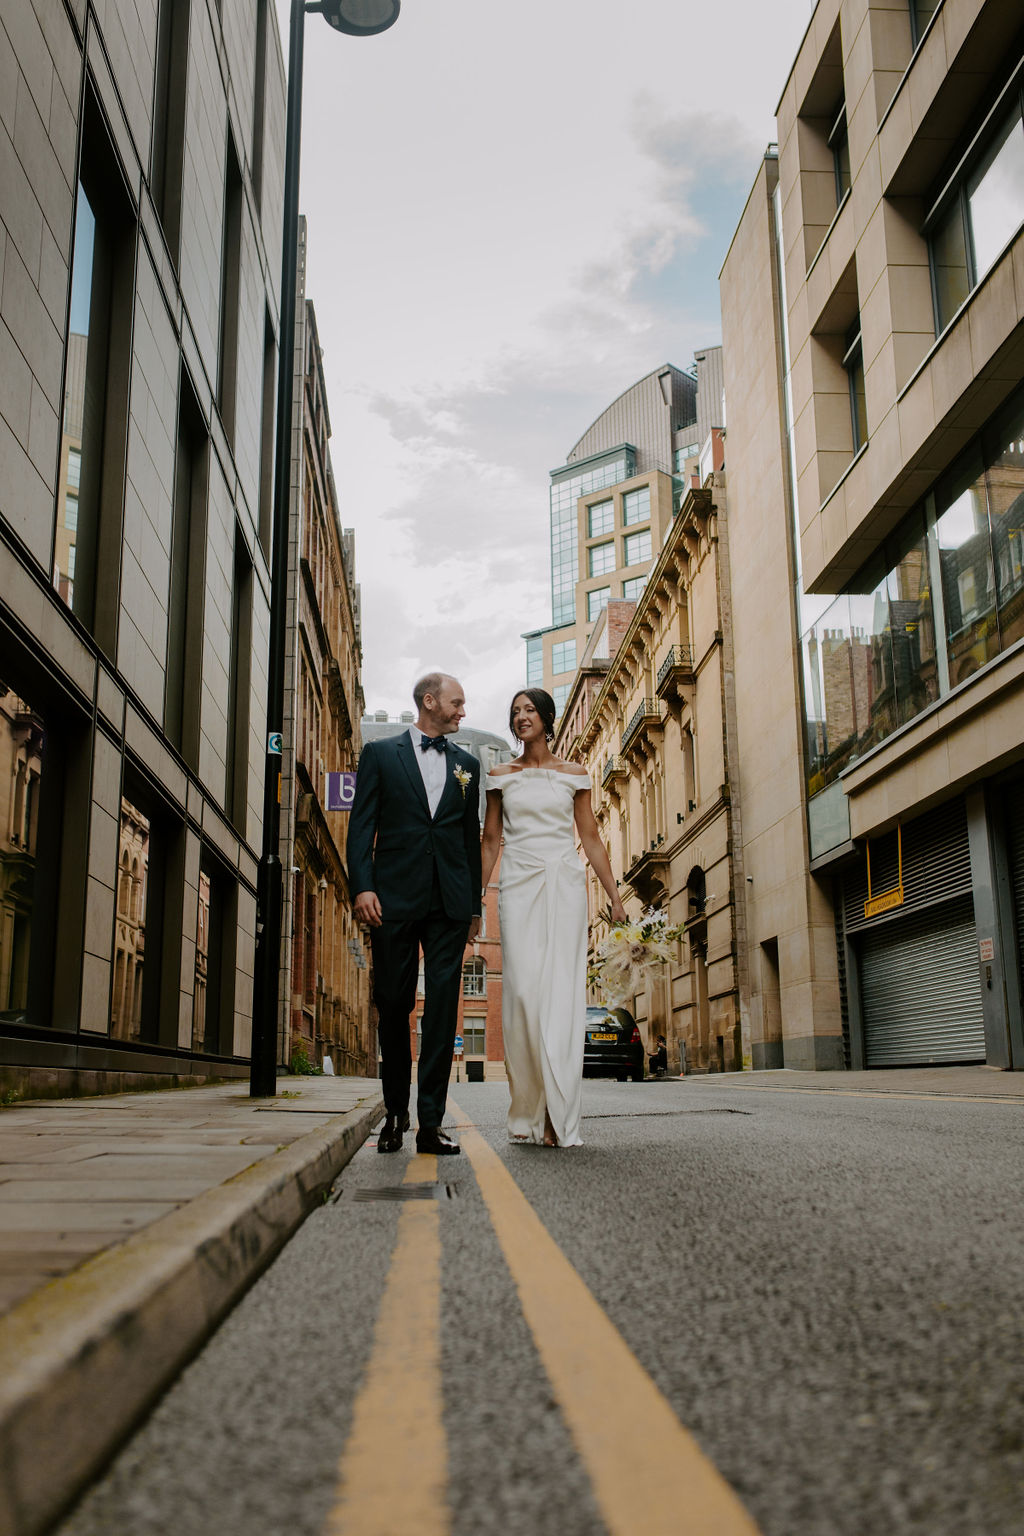 An Intimate City Wedding in Manchester (c) Gail Secker Photography (116)